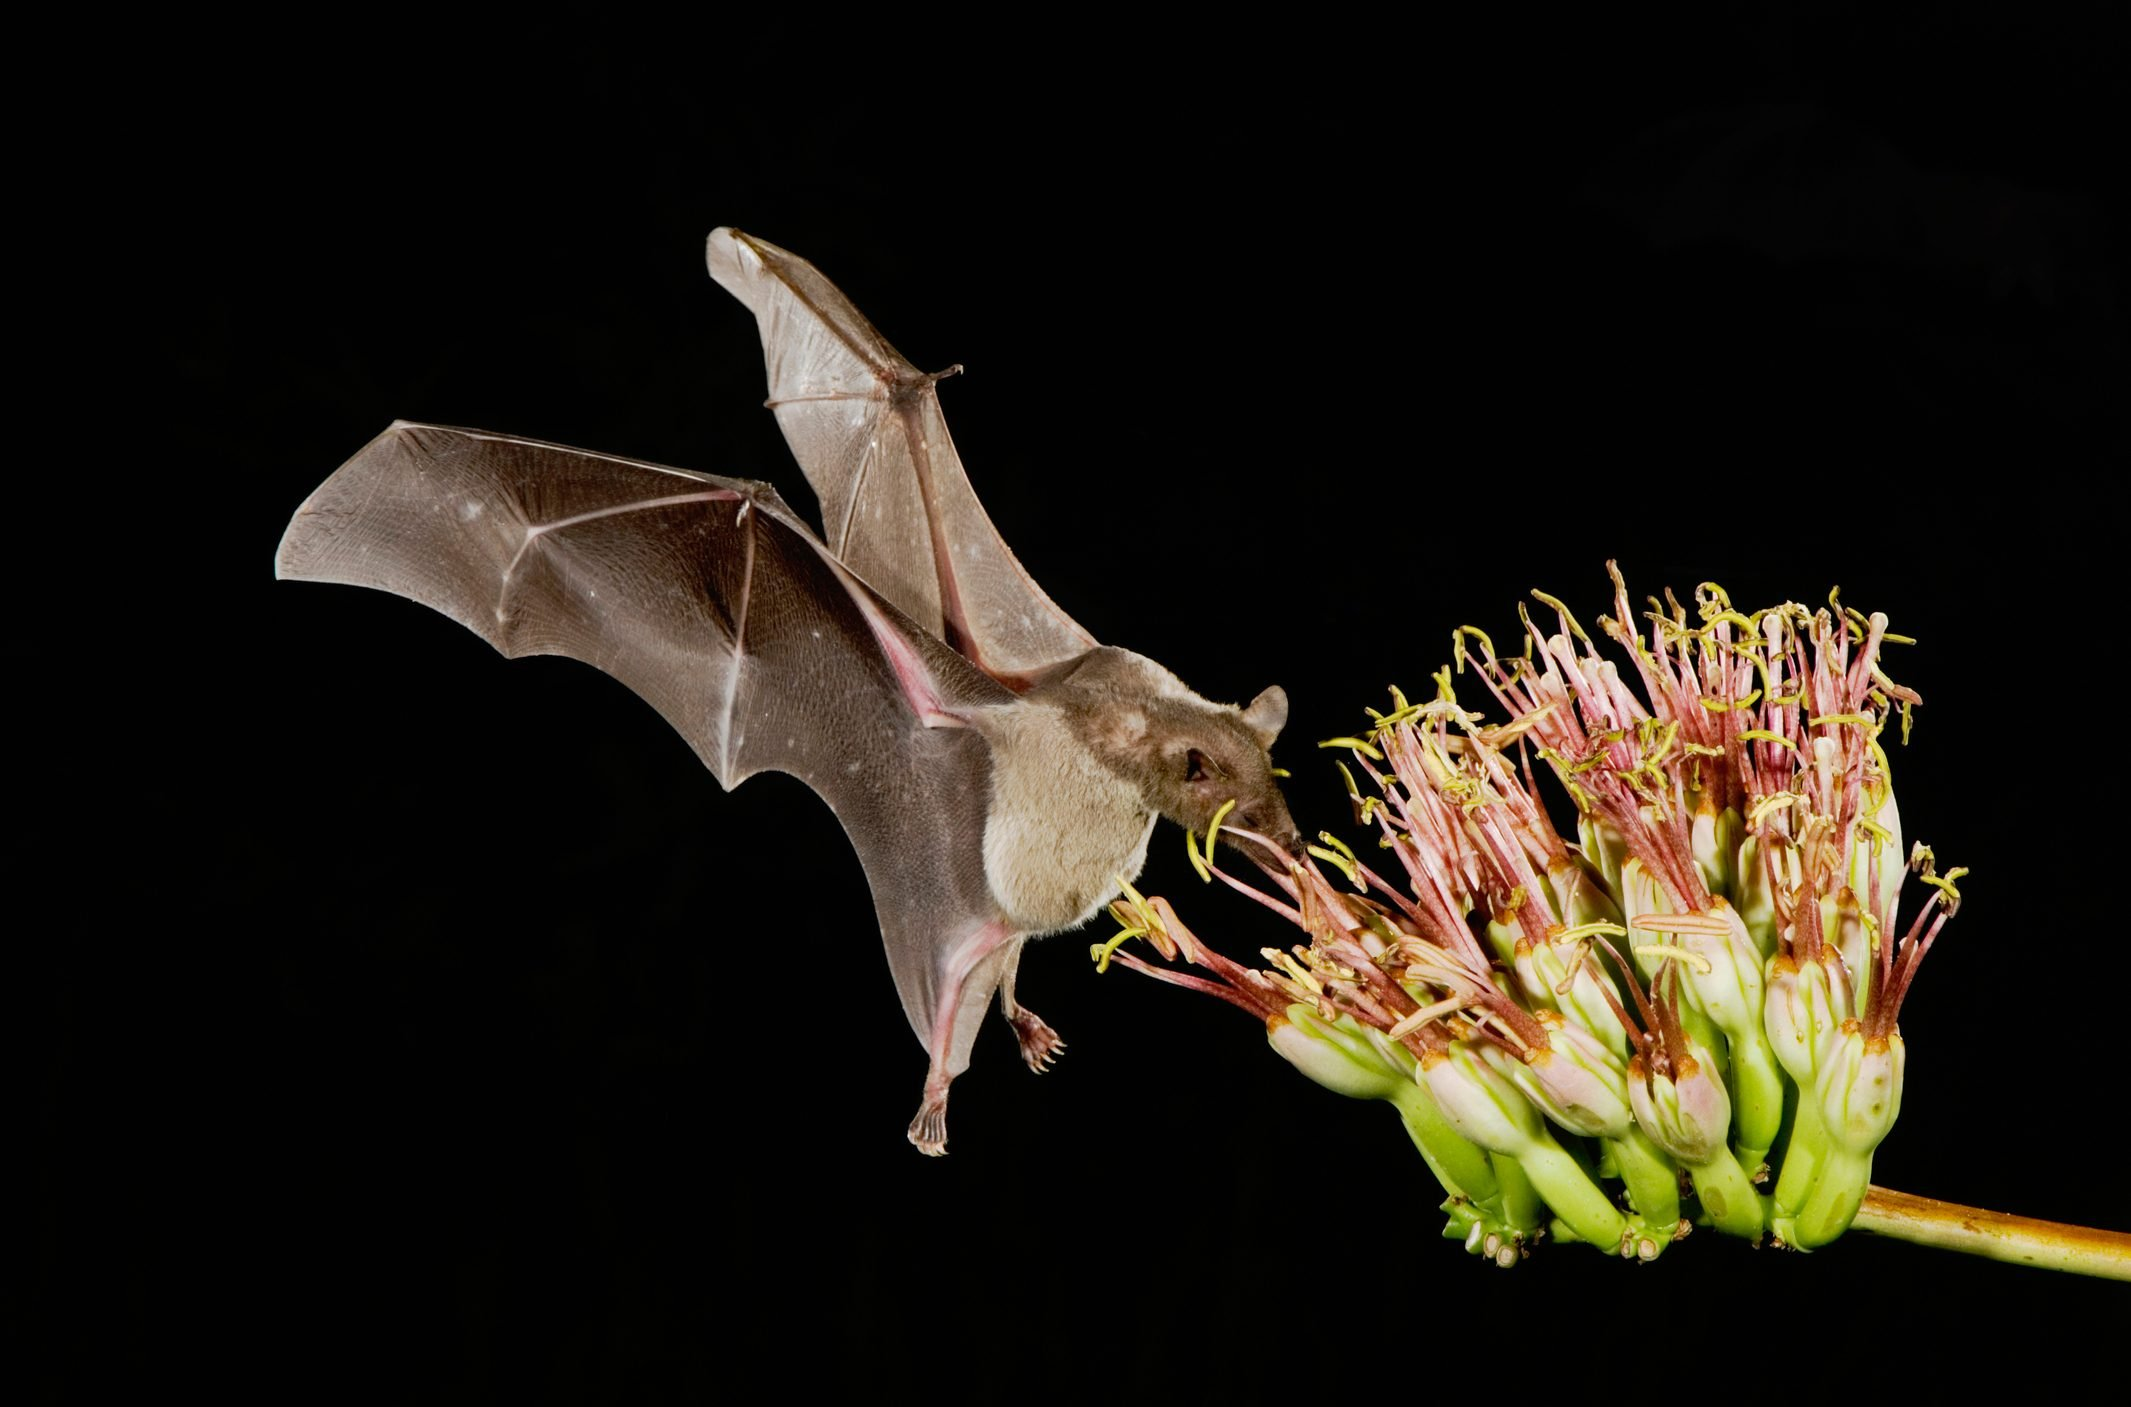 Lesser Long-nosed Bat (Leptonycteris curasoae), adult in flight at night feeding on Agave blossom (Agave sp.), Tucson, Sonoran desert, Arizona, USA